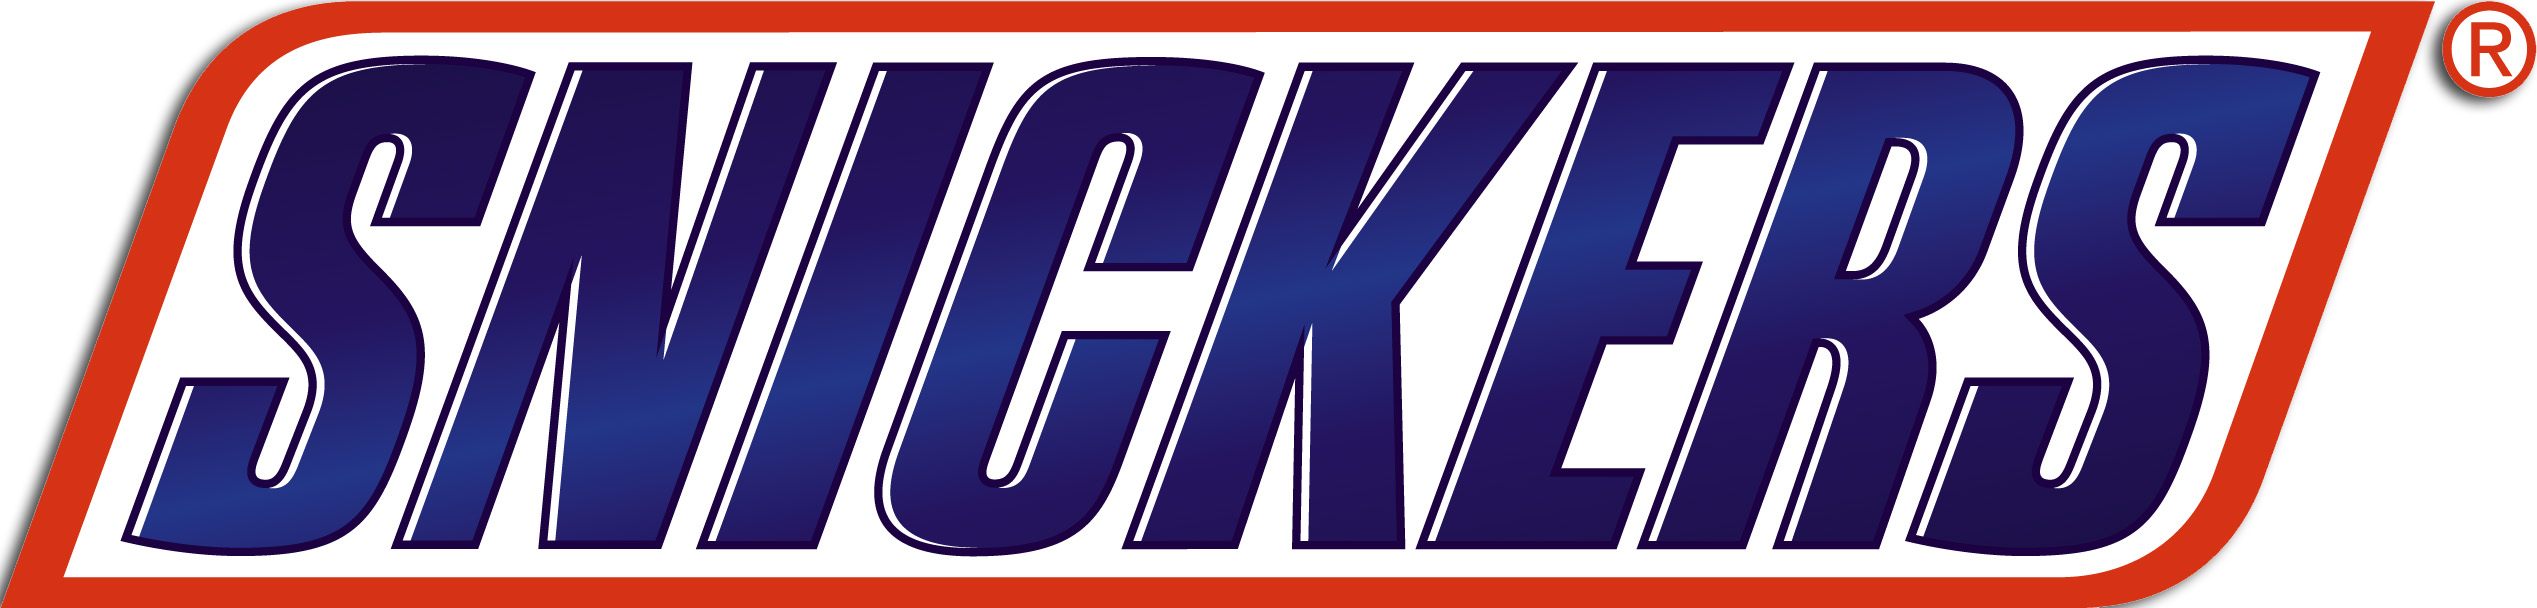 Snickers logo PNG